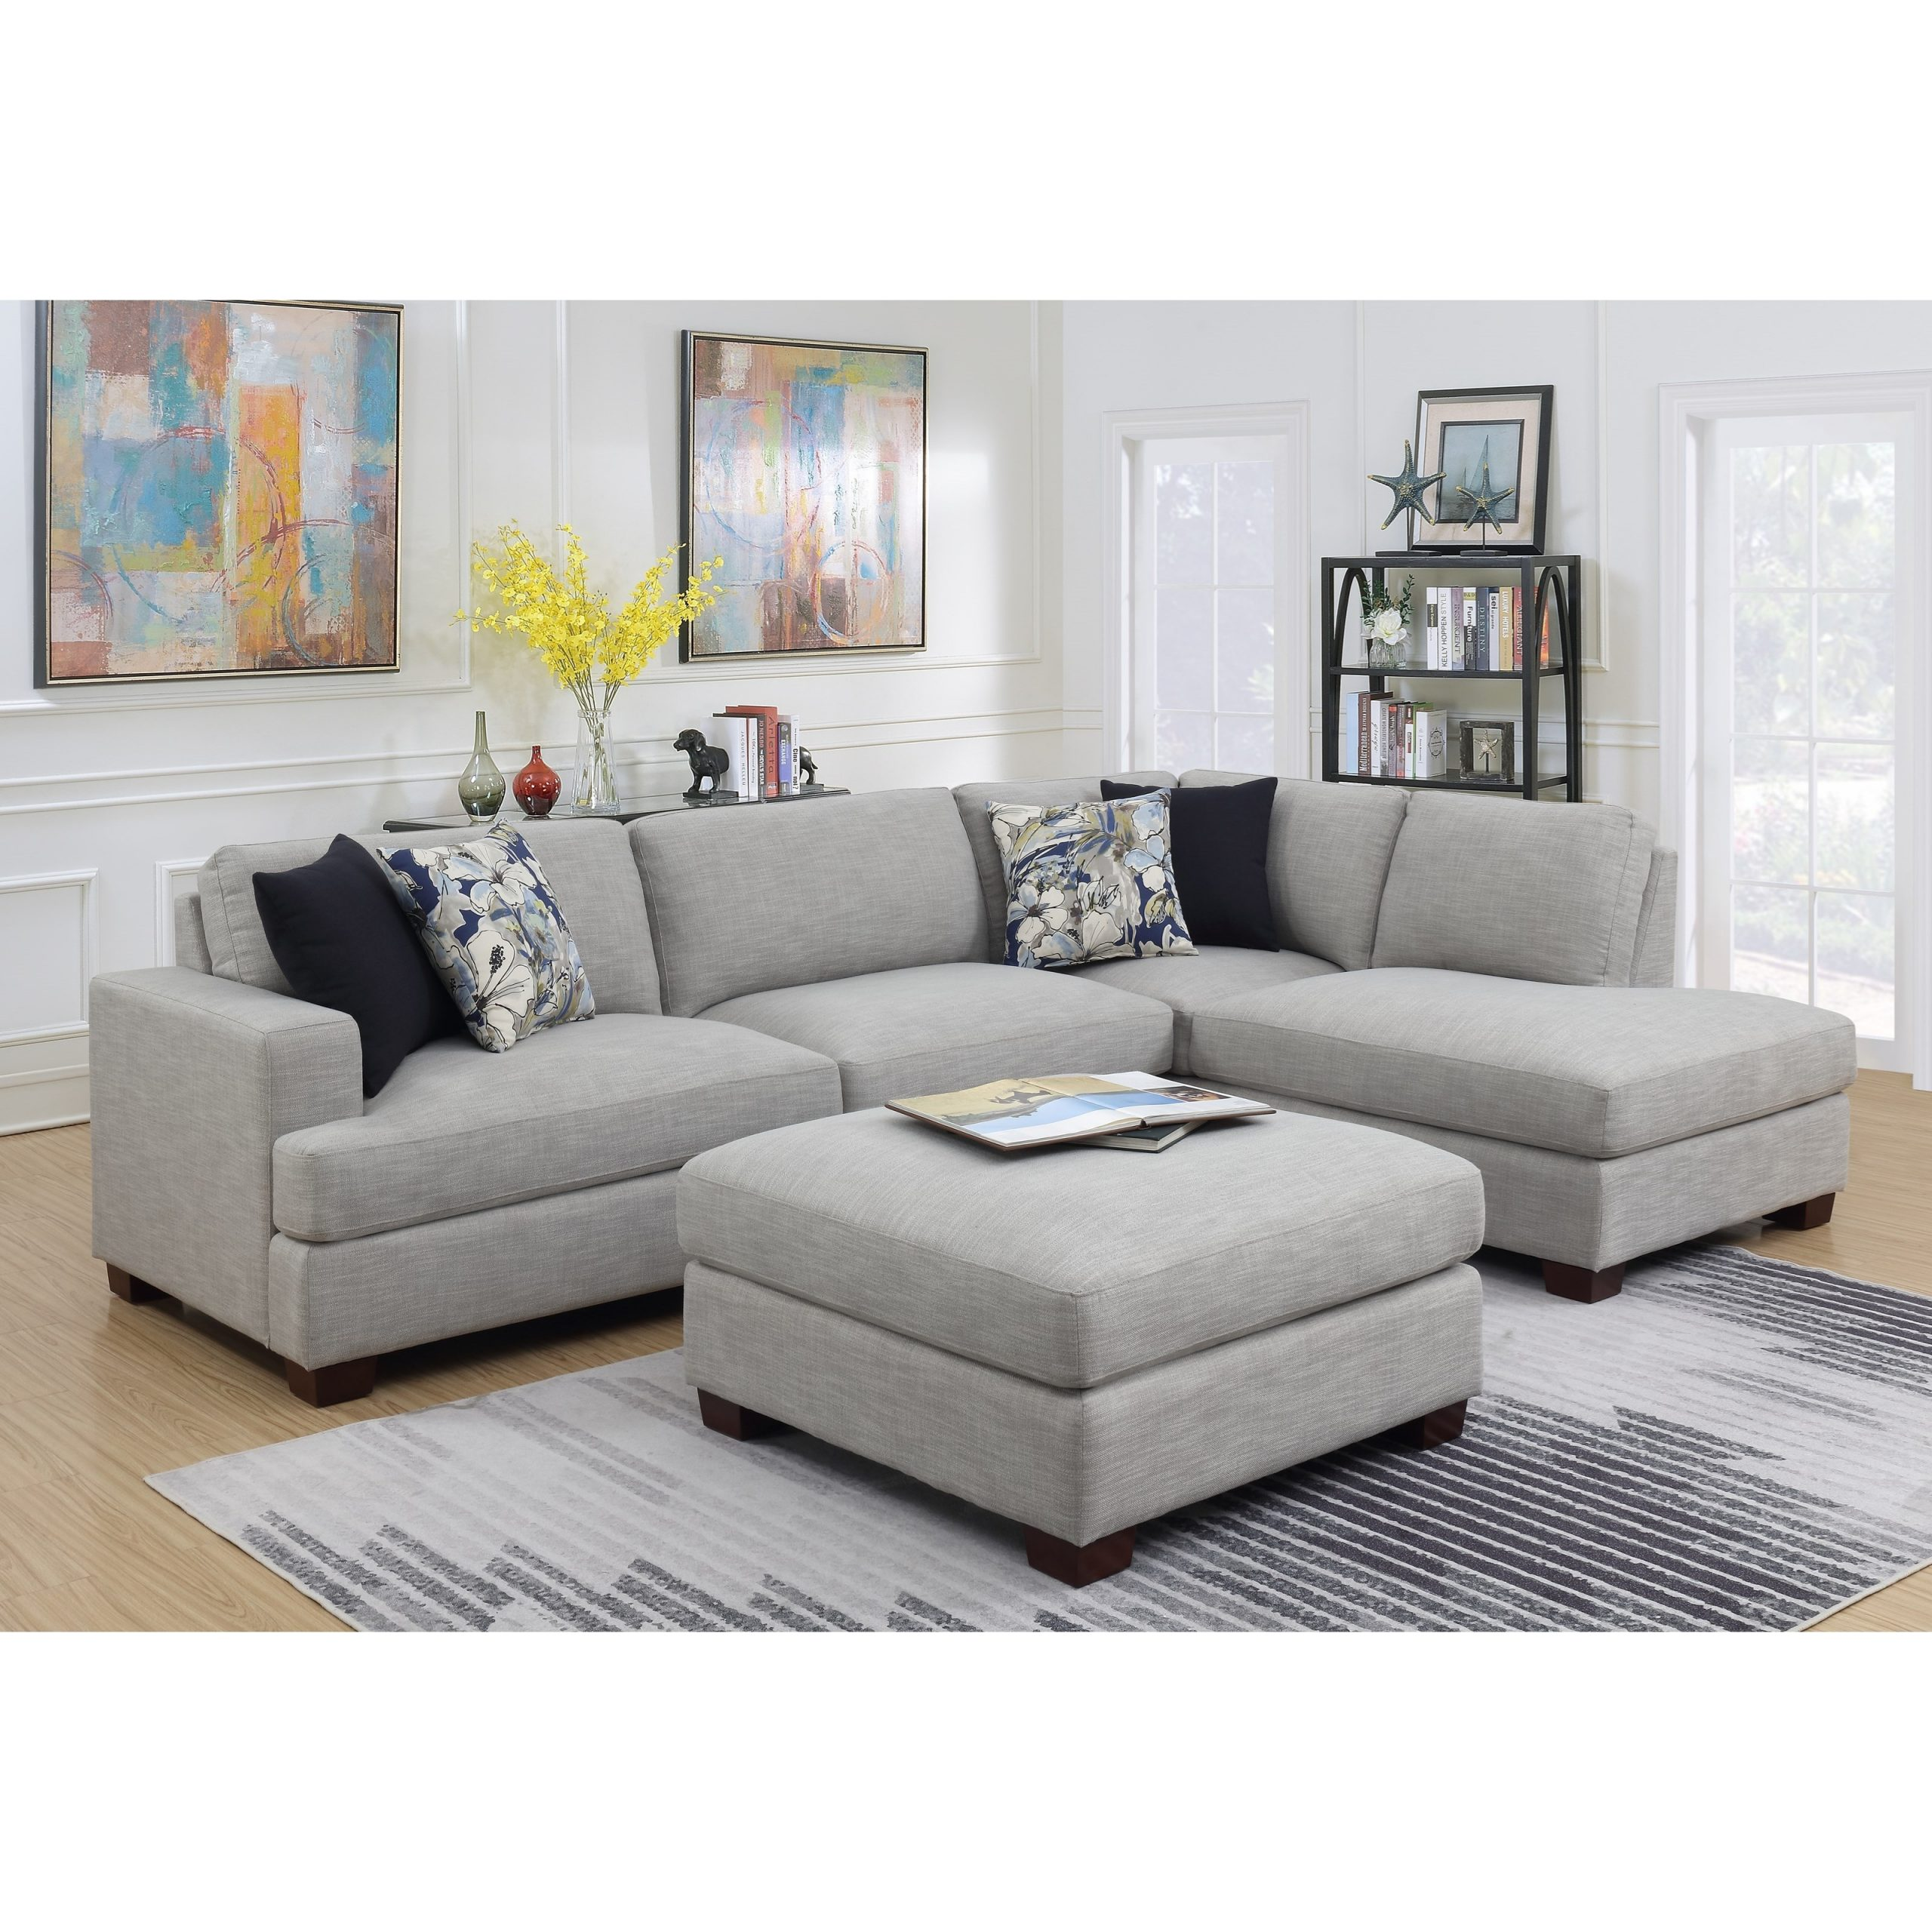 Emerald Vernon Contemporary 2 Piece Sectional Sofa With Inside 2Pc Burland Contemporary Chaise Sectional Sofas (View 1 of 15)